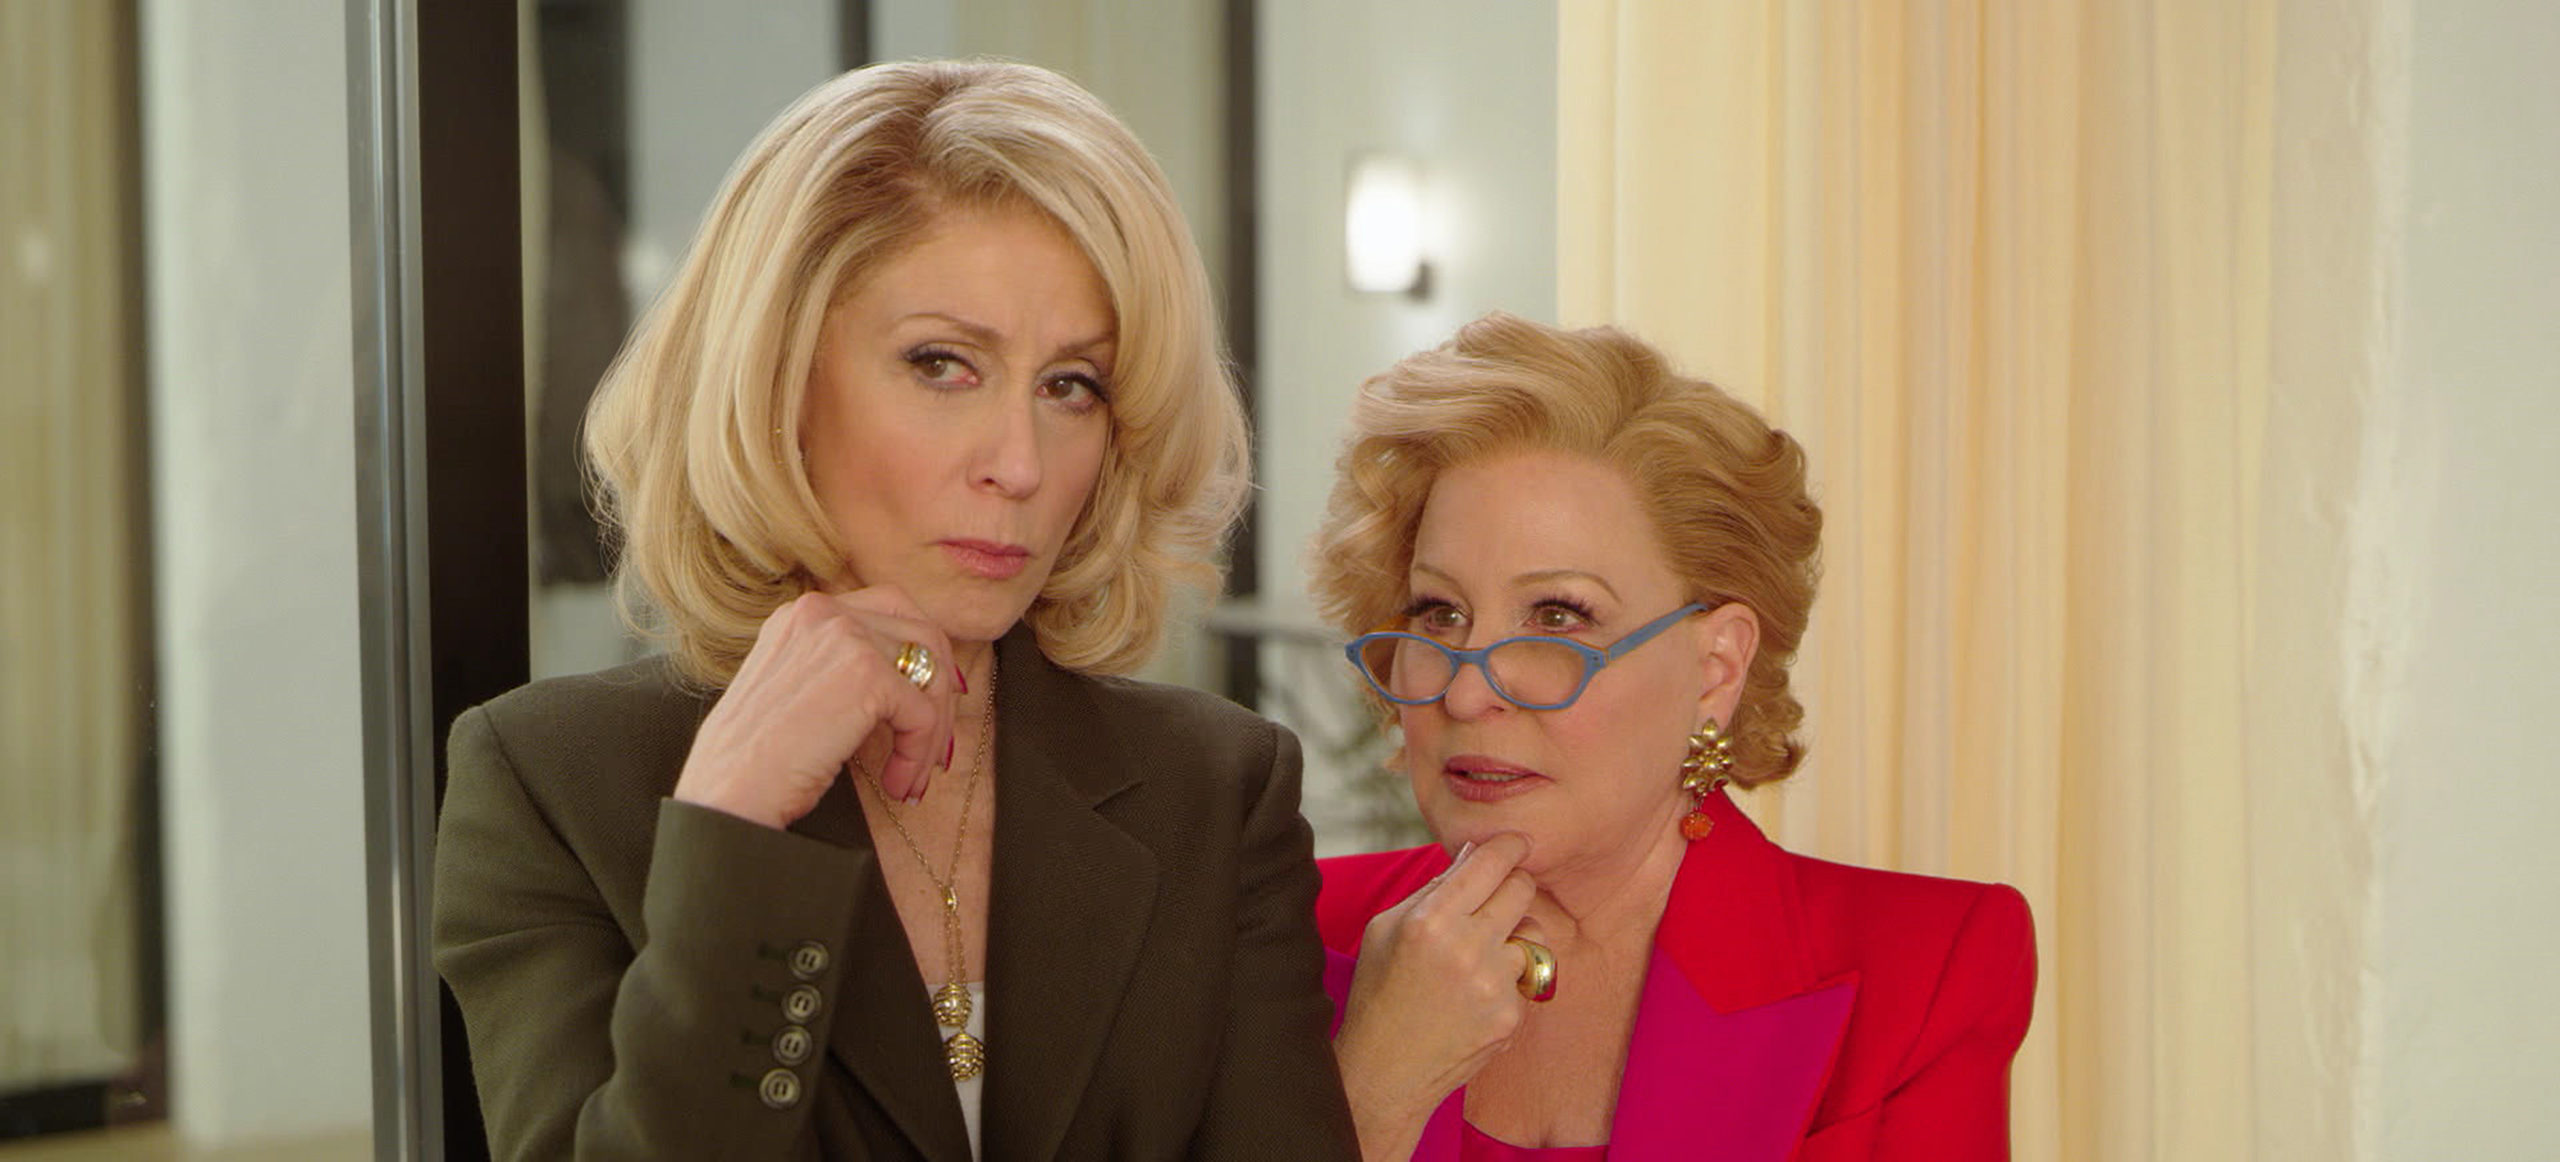 Judith Light as Dede Standish and Bette Midler as Hadassah Gold in The Politician